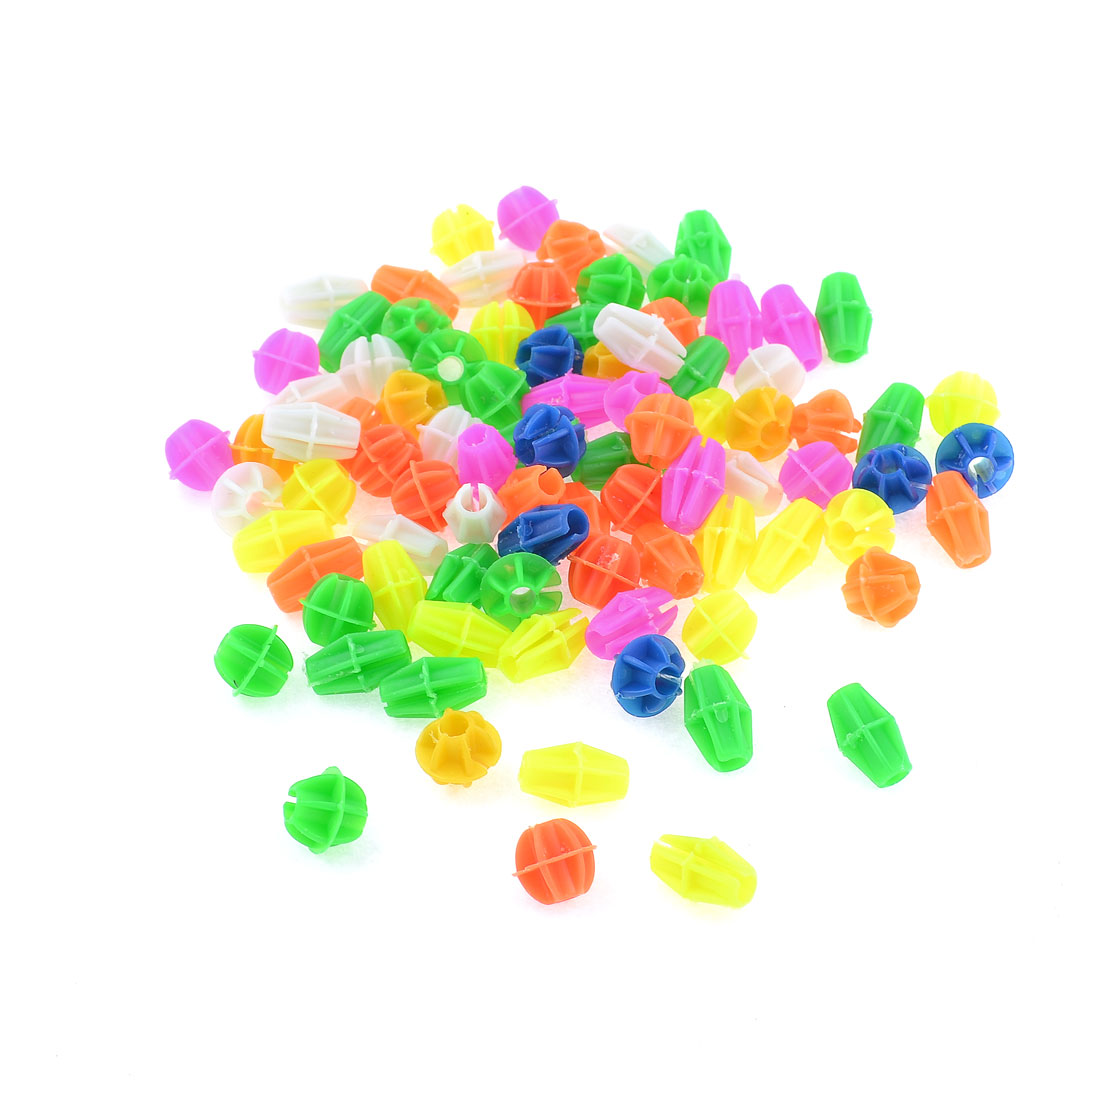 90 Pcs Assorted Color Cylindrical Oval Shape Plastic Bicycle Spoke Beads